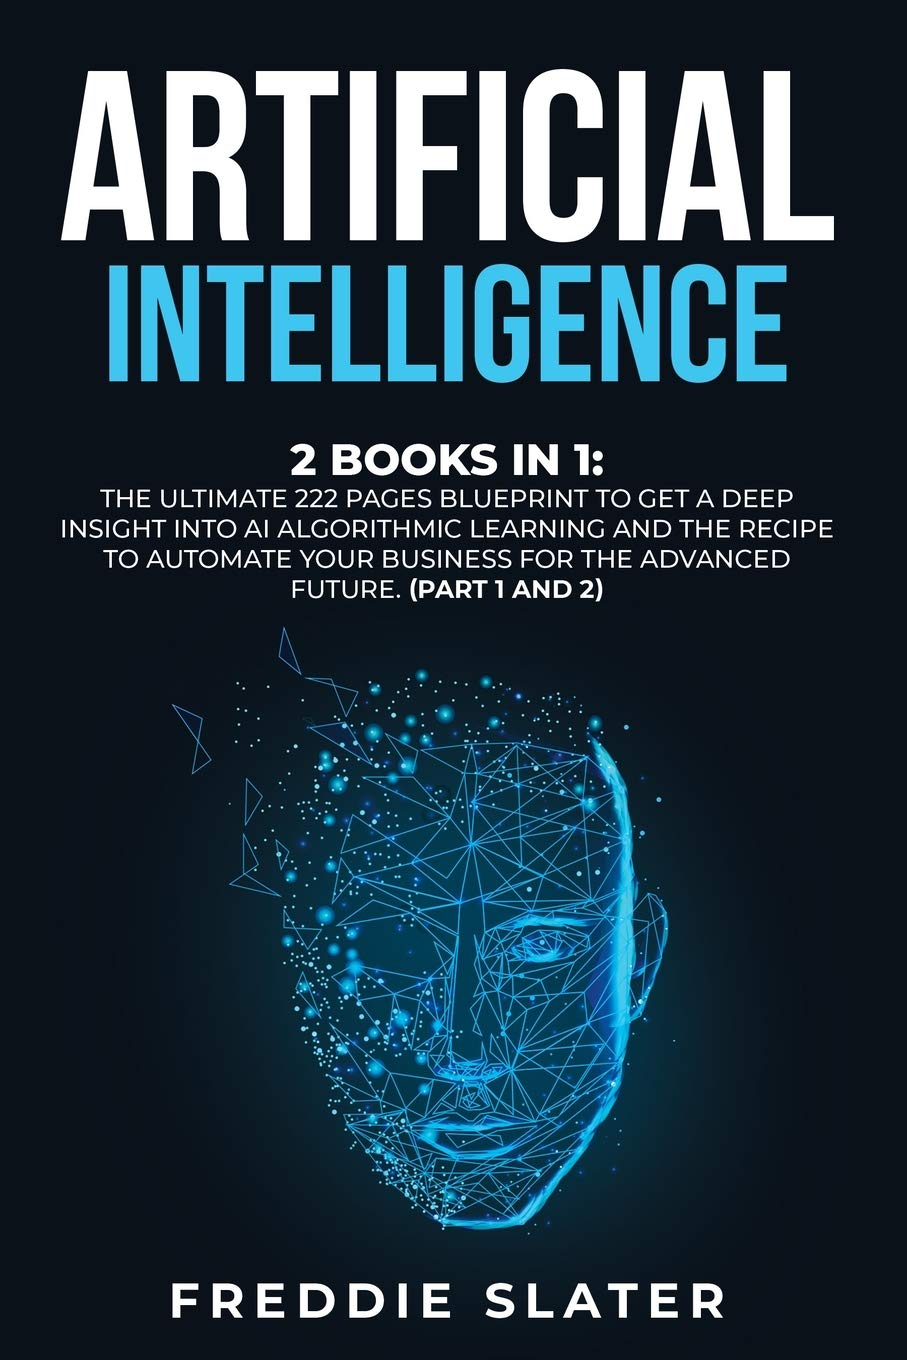 Artificial Intelligence: 2 Books in 1: The Ultimate 222 Pages Blueprint to Get a Deep Insight into AI Algorithmic Learning and The Recipe to Automate … for The Advanced Future. (Part 1 and 2)